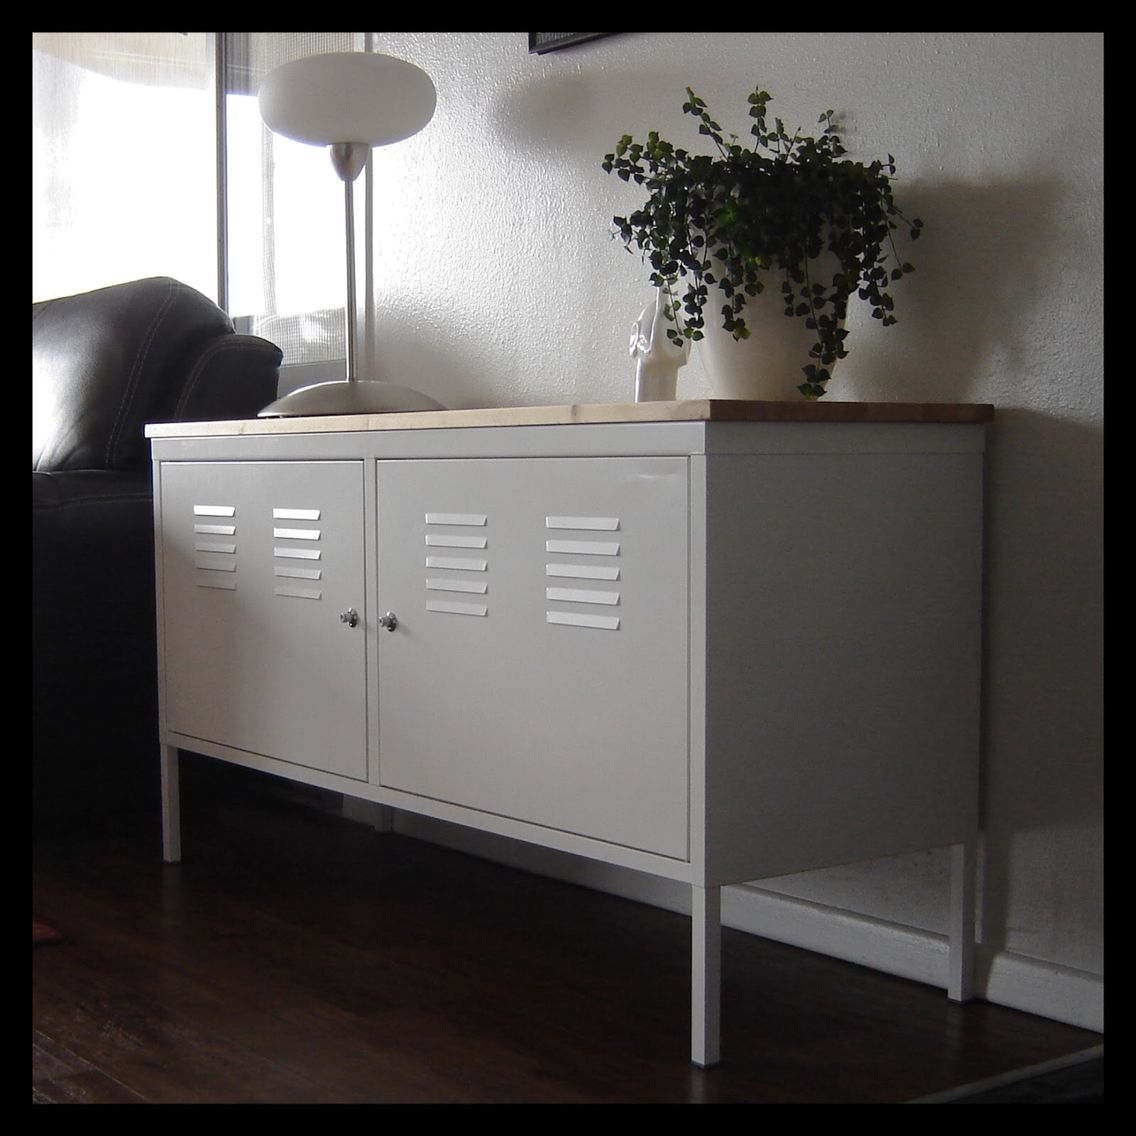 Muebles Entradas Ikea Ikea Ps Cabinet Inspiration For New Apartment Muebles